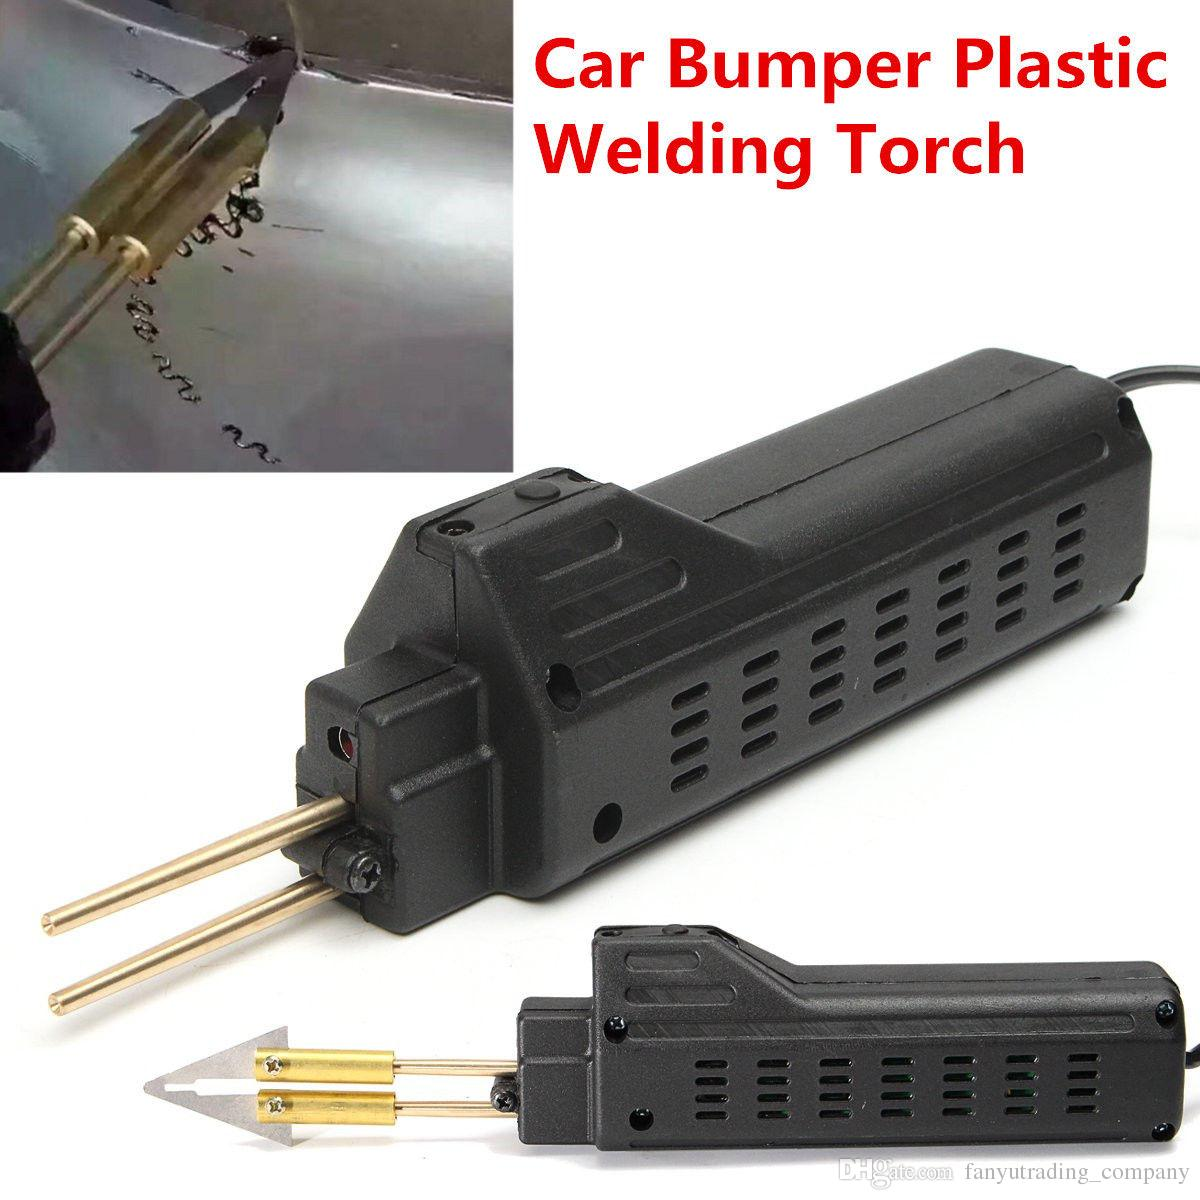 2019 Professional Hot Stapler Plastic Repair System Welding Gun Bumper Fairing Auto Body Tool Plastic Welder + 200 Staples